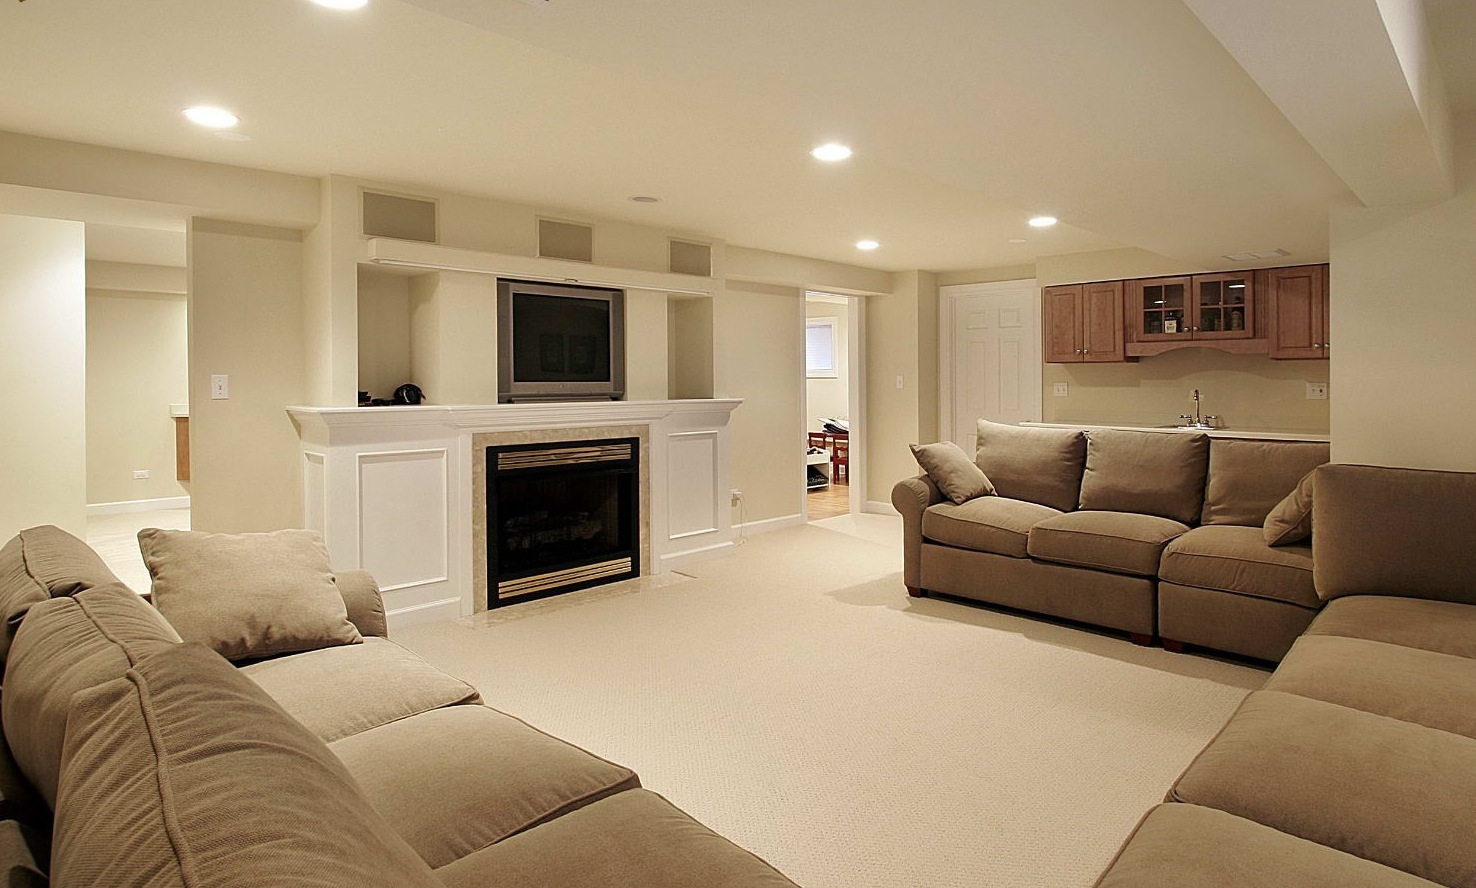 Living Room Renovation Ideas 30 basement remodeling ideas & inspiration